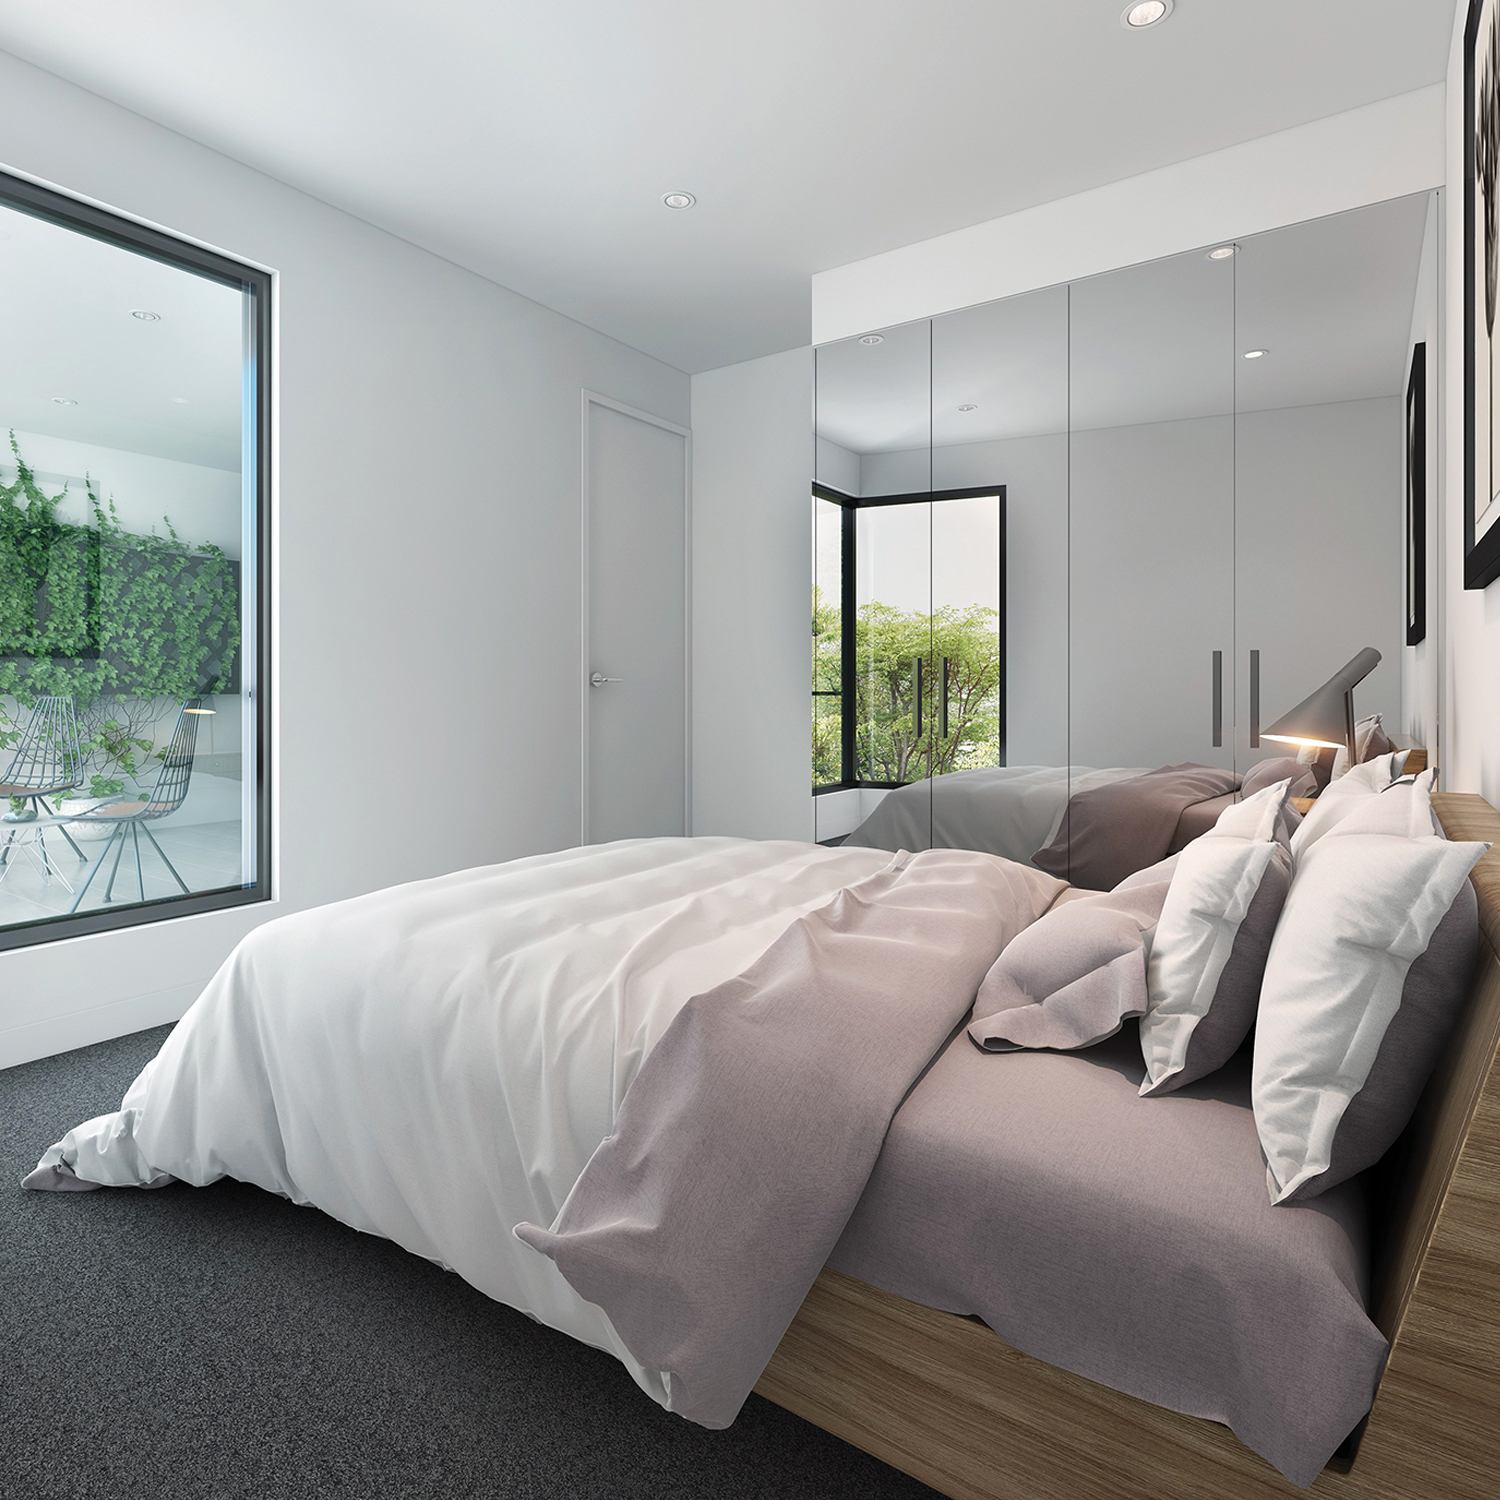 Ascent_Bedroom.jpg